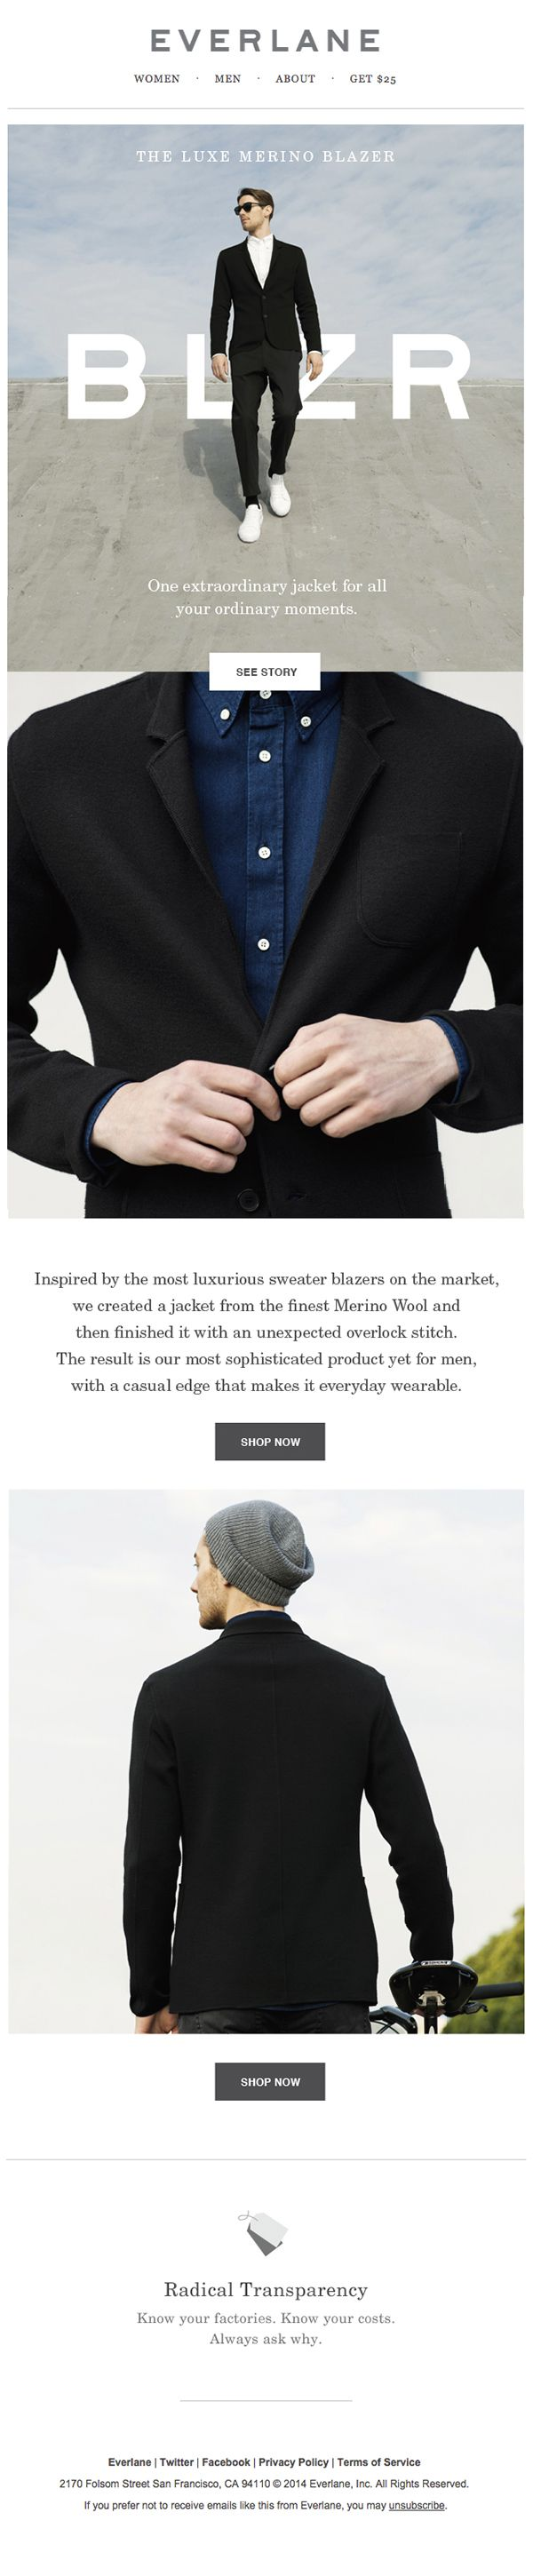 Everlane email featuring release of men's luxury blazer. Love the hero typography, storytelling, CTA placement, and simplicity. They forgot to change the copyright date from 2014 to 2015, oops! Something to watch out for in January emails.